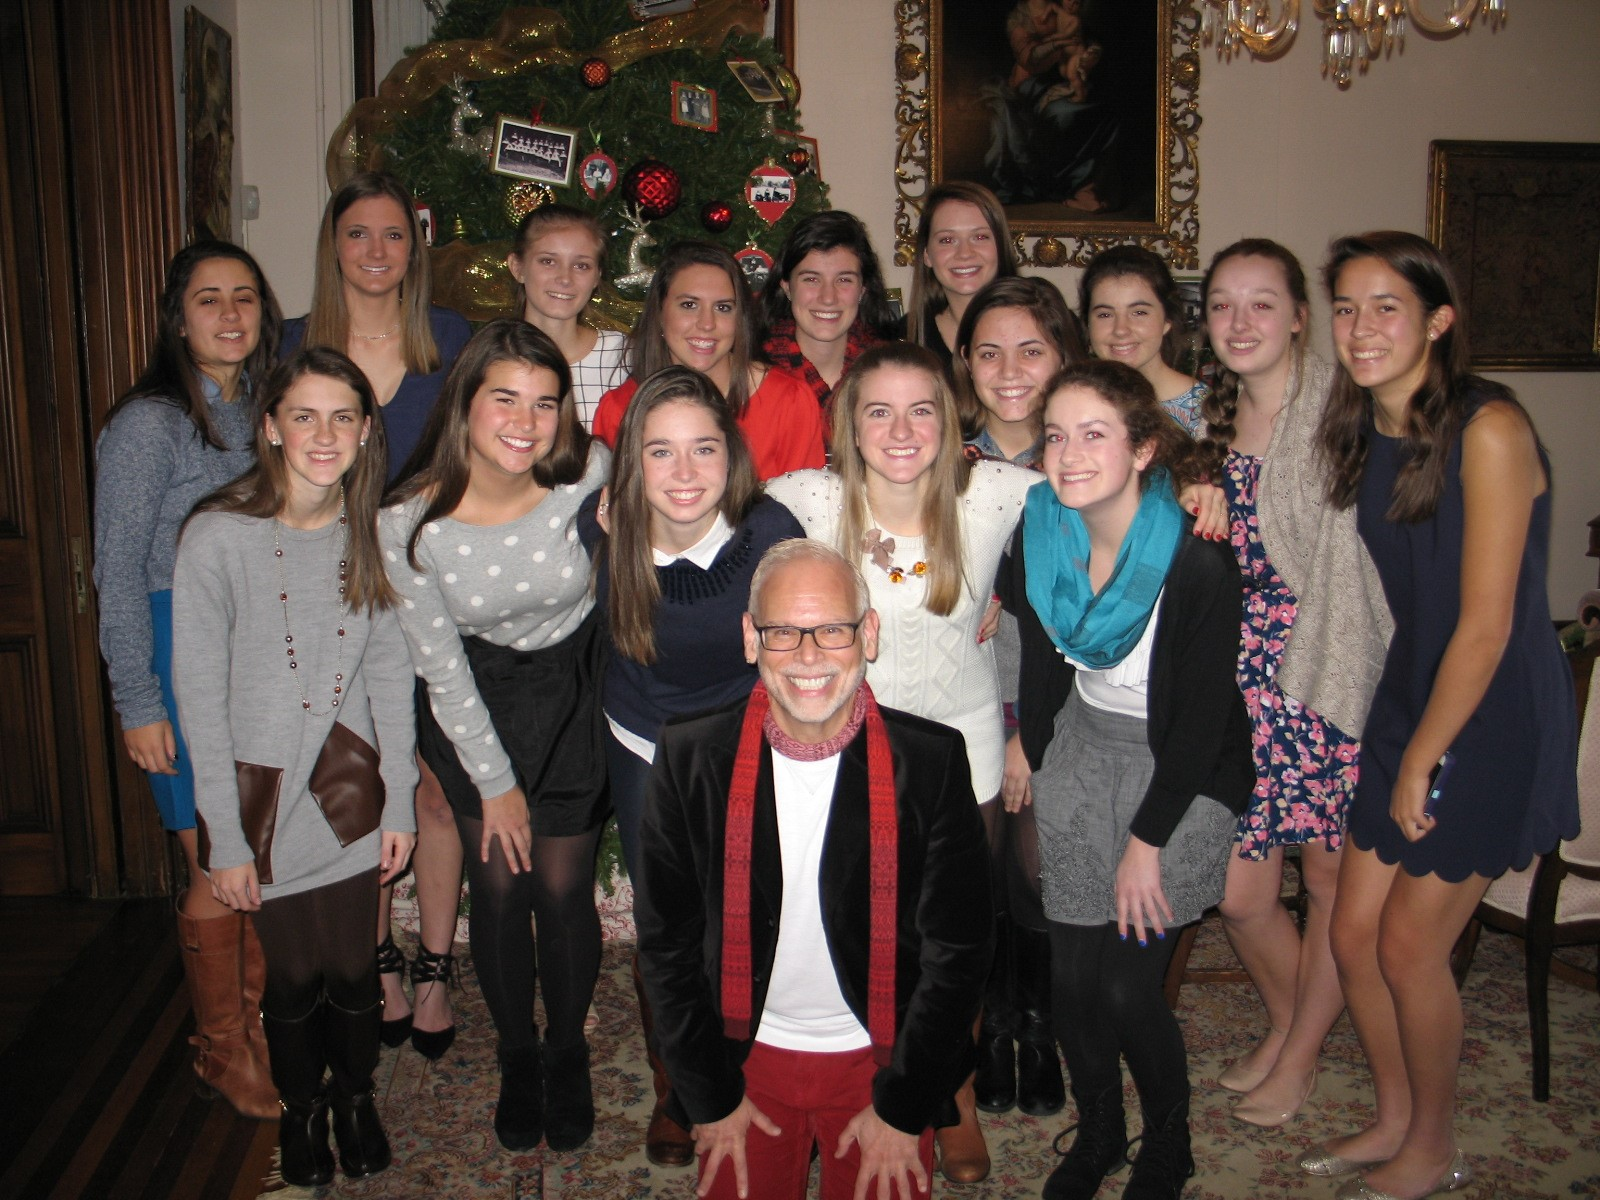 French Honor Society students recently celebrated Christmas in our parlors